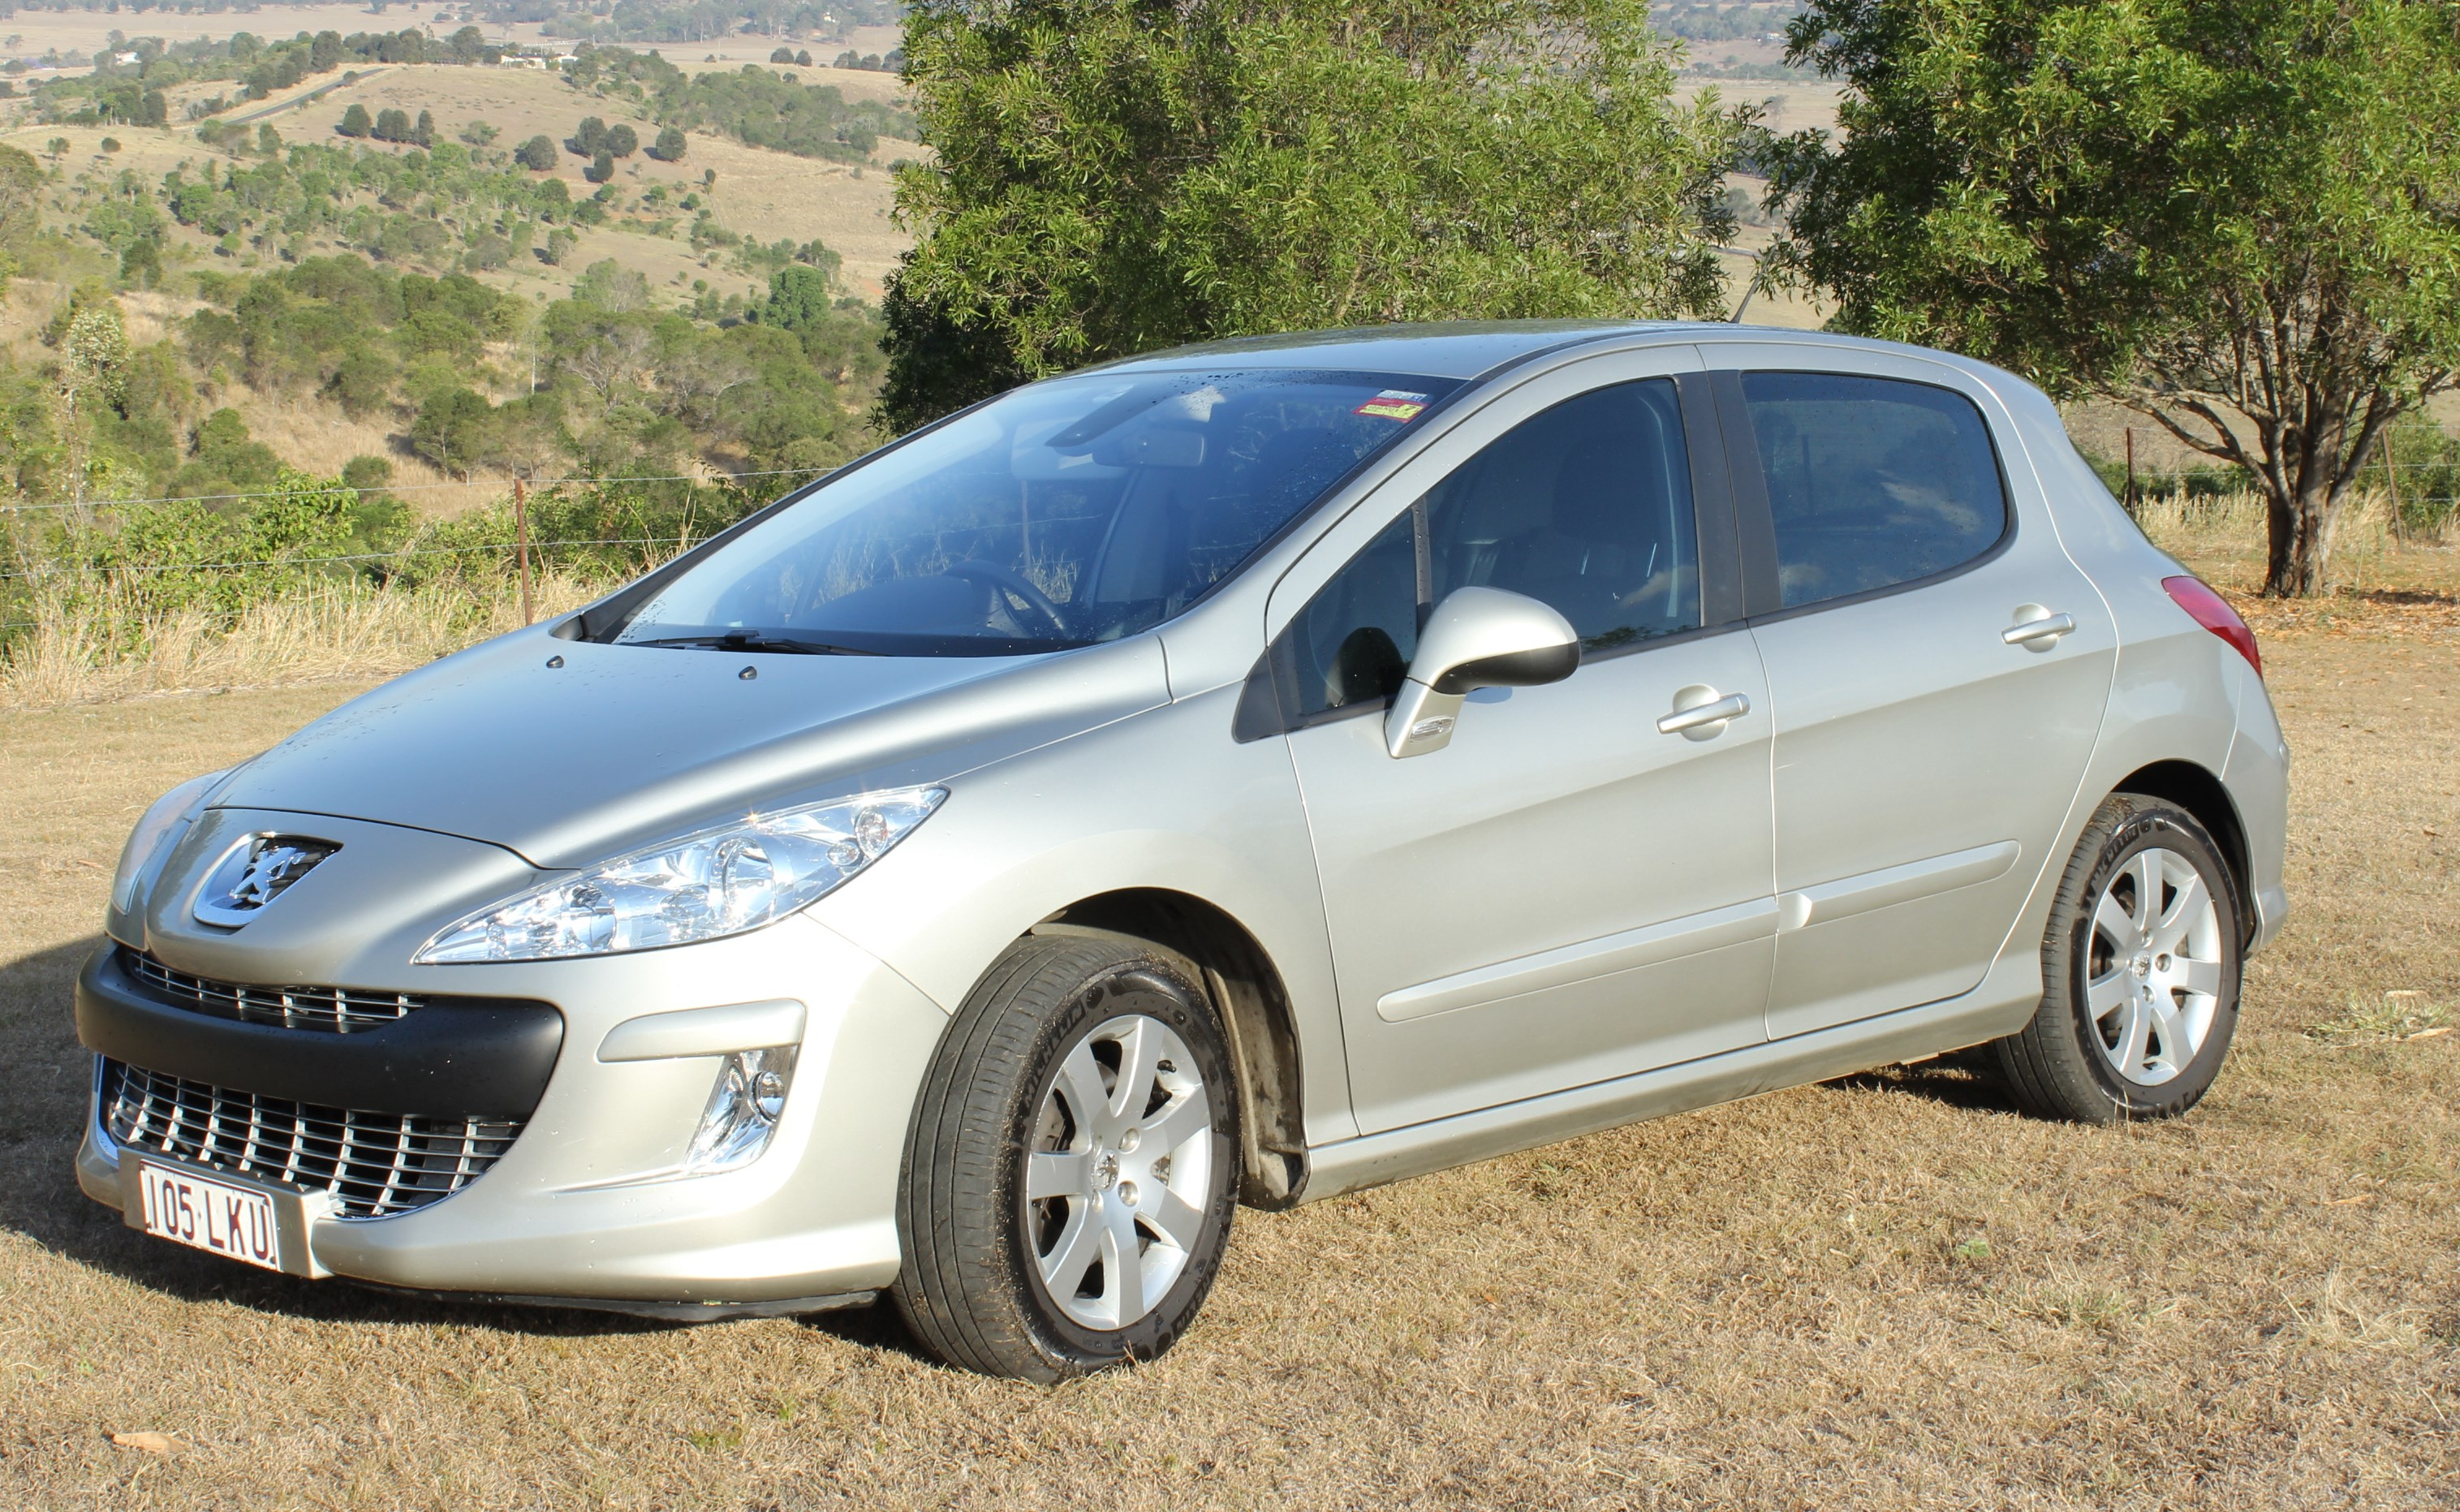 2009 peugeot 308 xse hdi for sale qld brisbane west. Black Bedroom Furniture Sets. Home Design Ideas